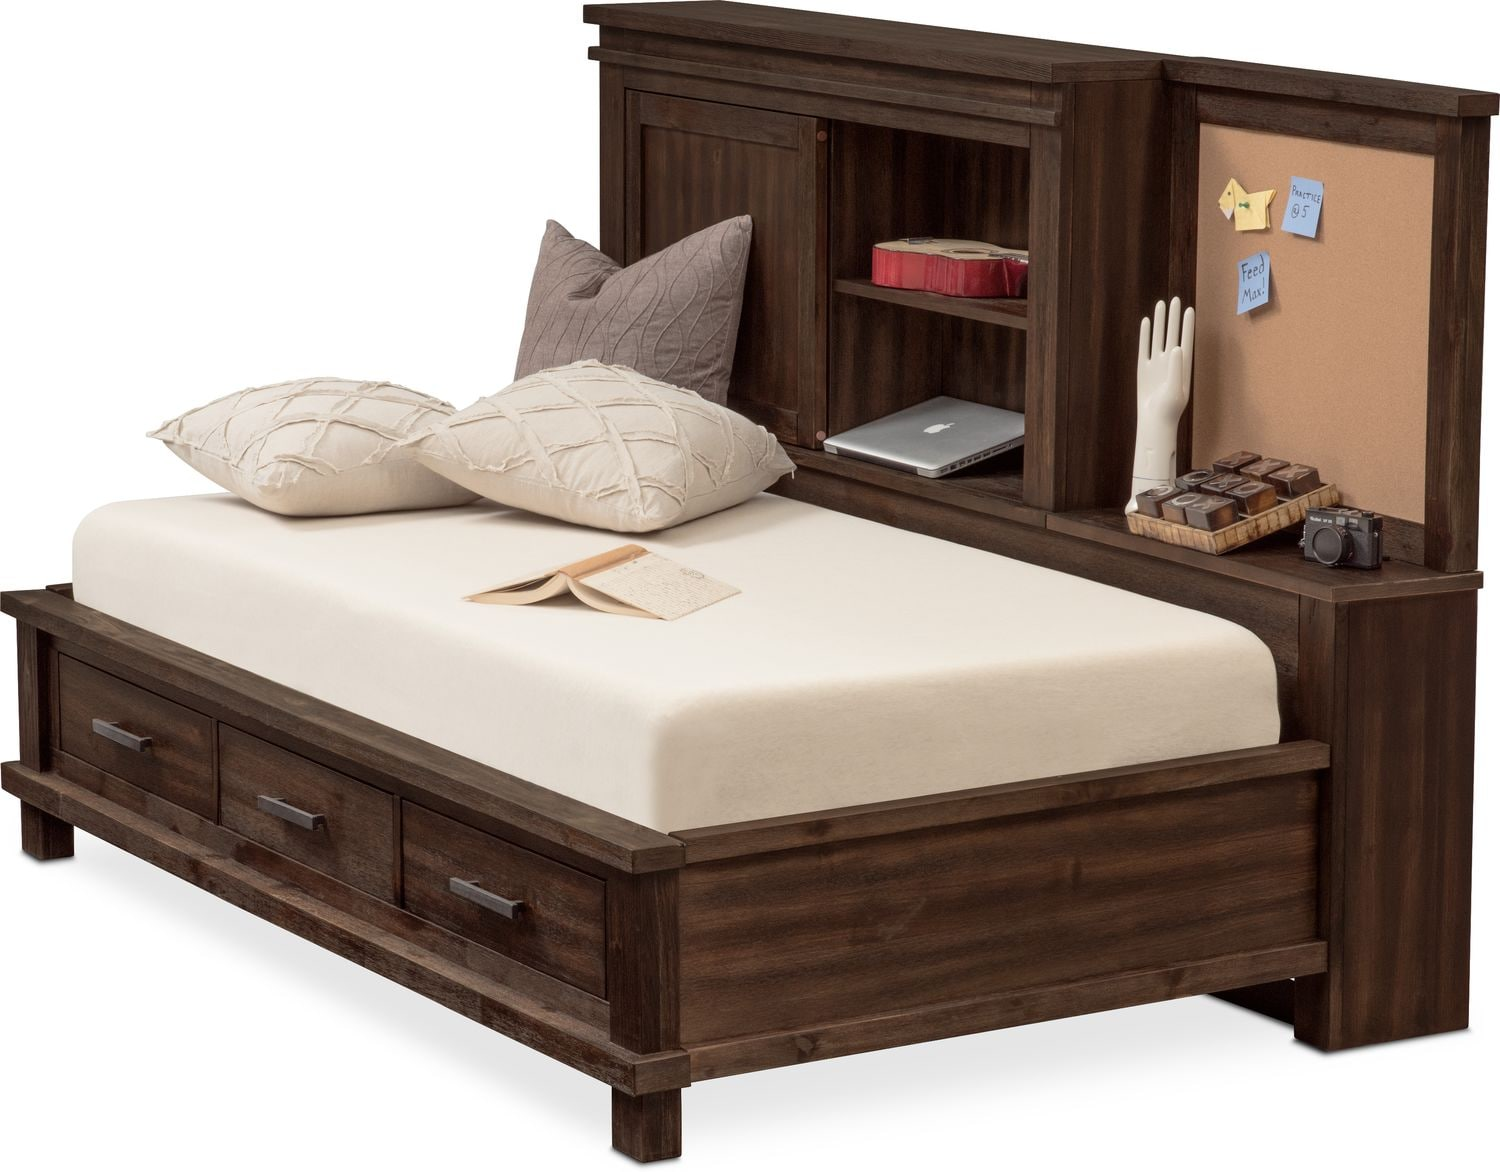 Bedroom Furniture - Tribeca Lounge Bed